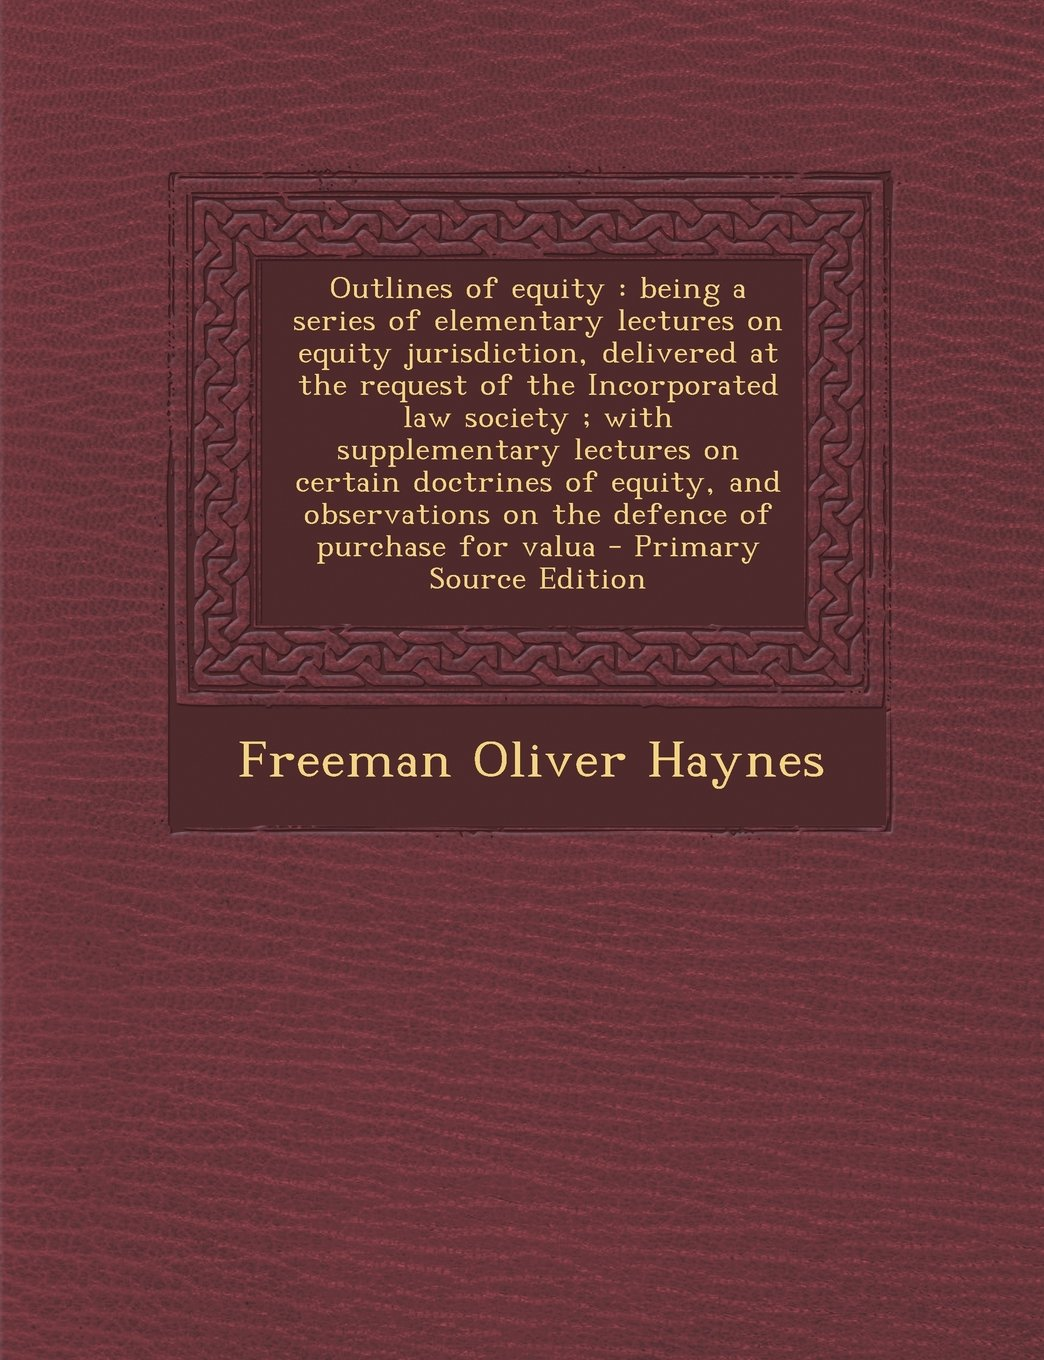 Read Online Outlines of equity: being a series of elementary lectures on equity jurisdiction, delivered at the request of the Incorporated law society ; with ... on the defence of purchase for valua ebook